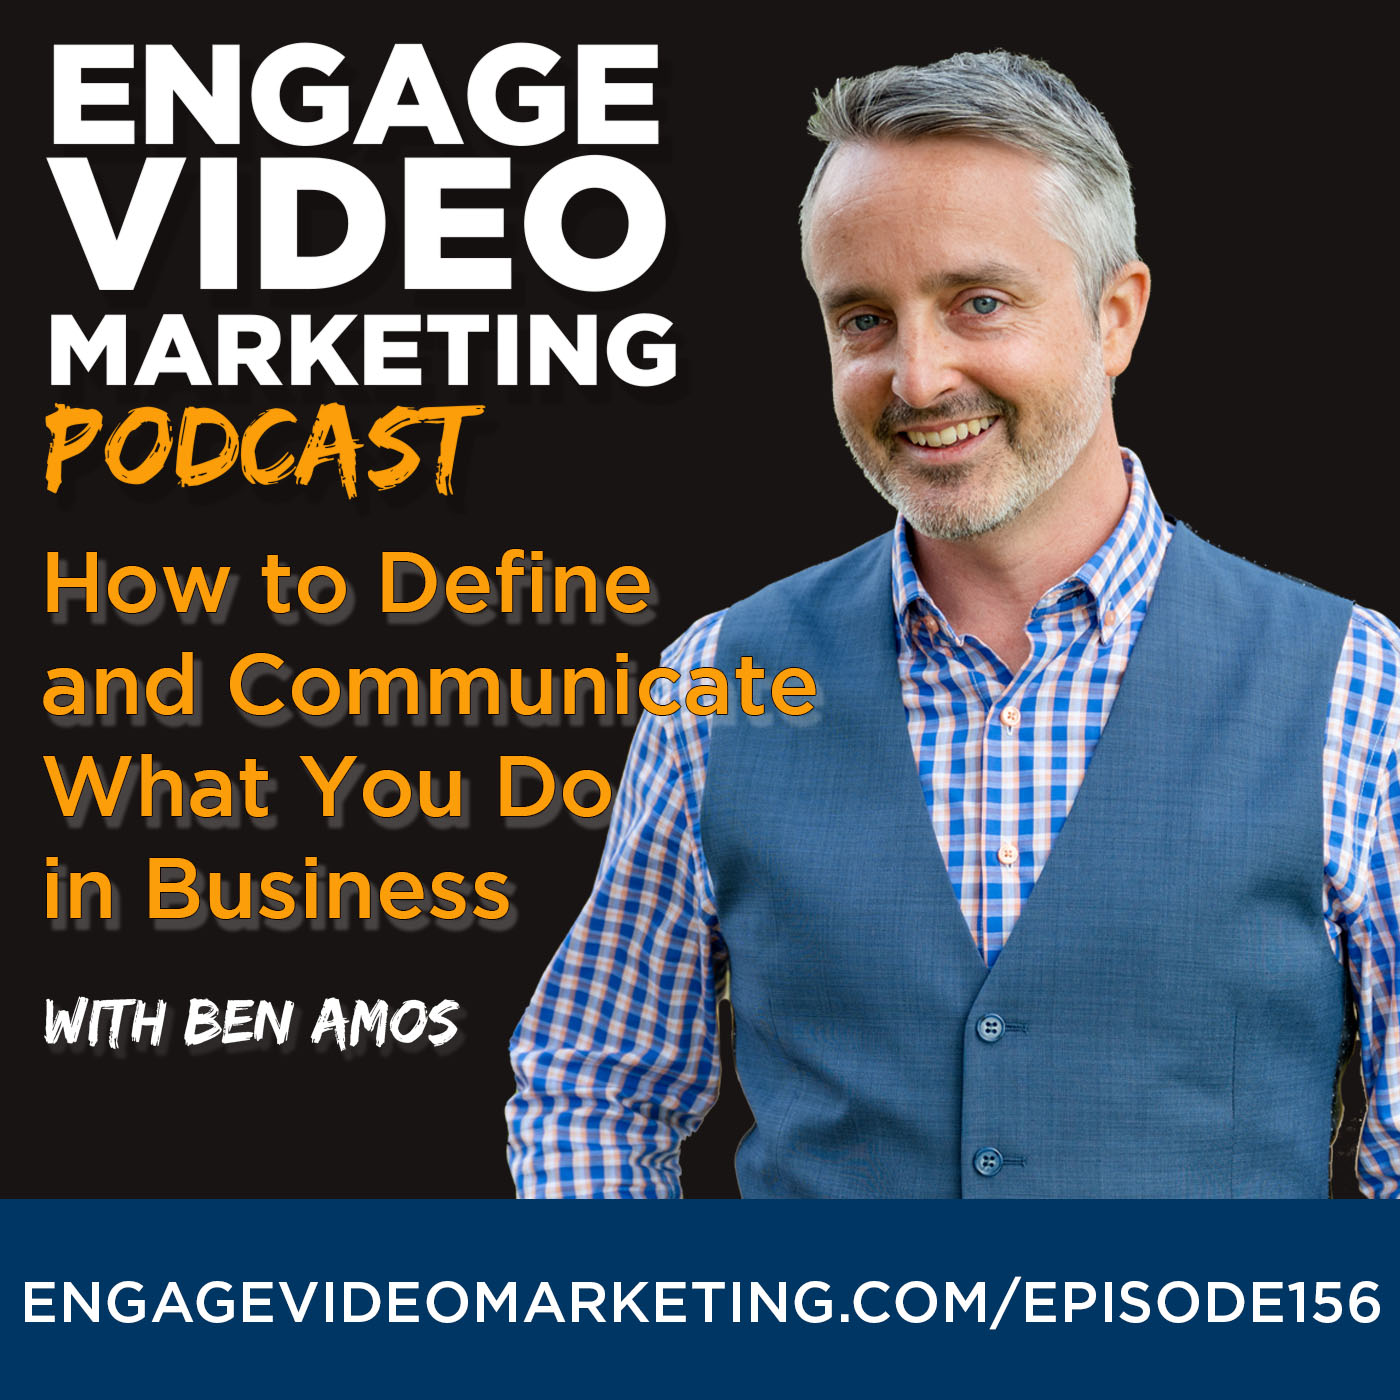 How to Define and Communicate What You Do in Business